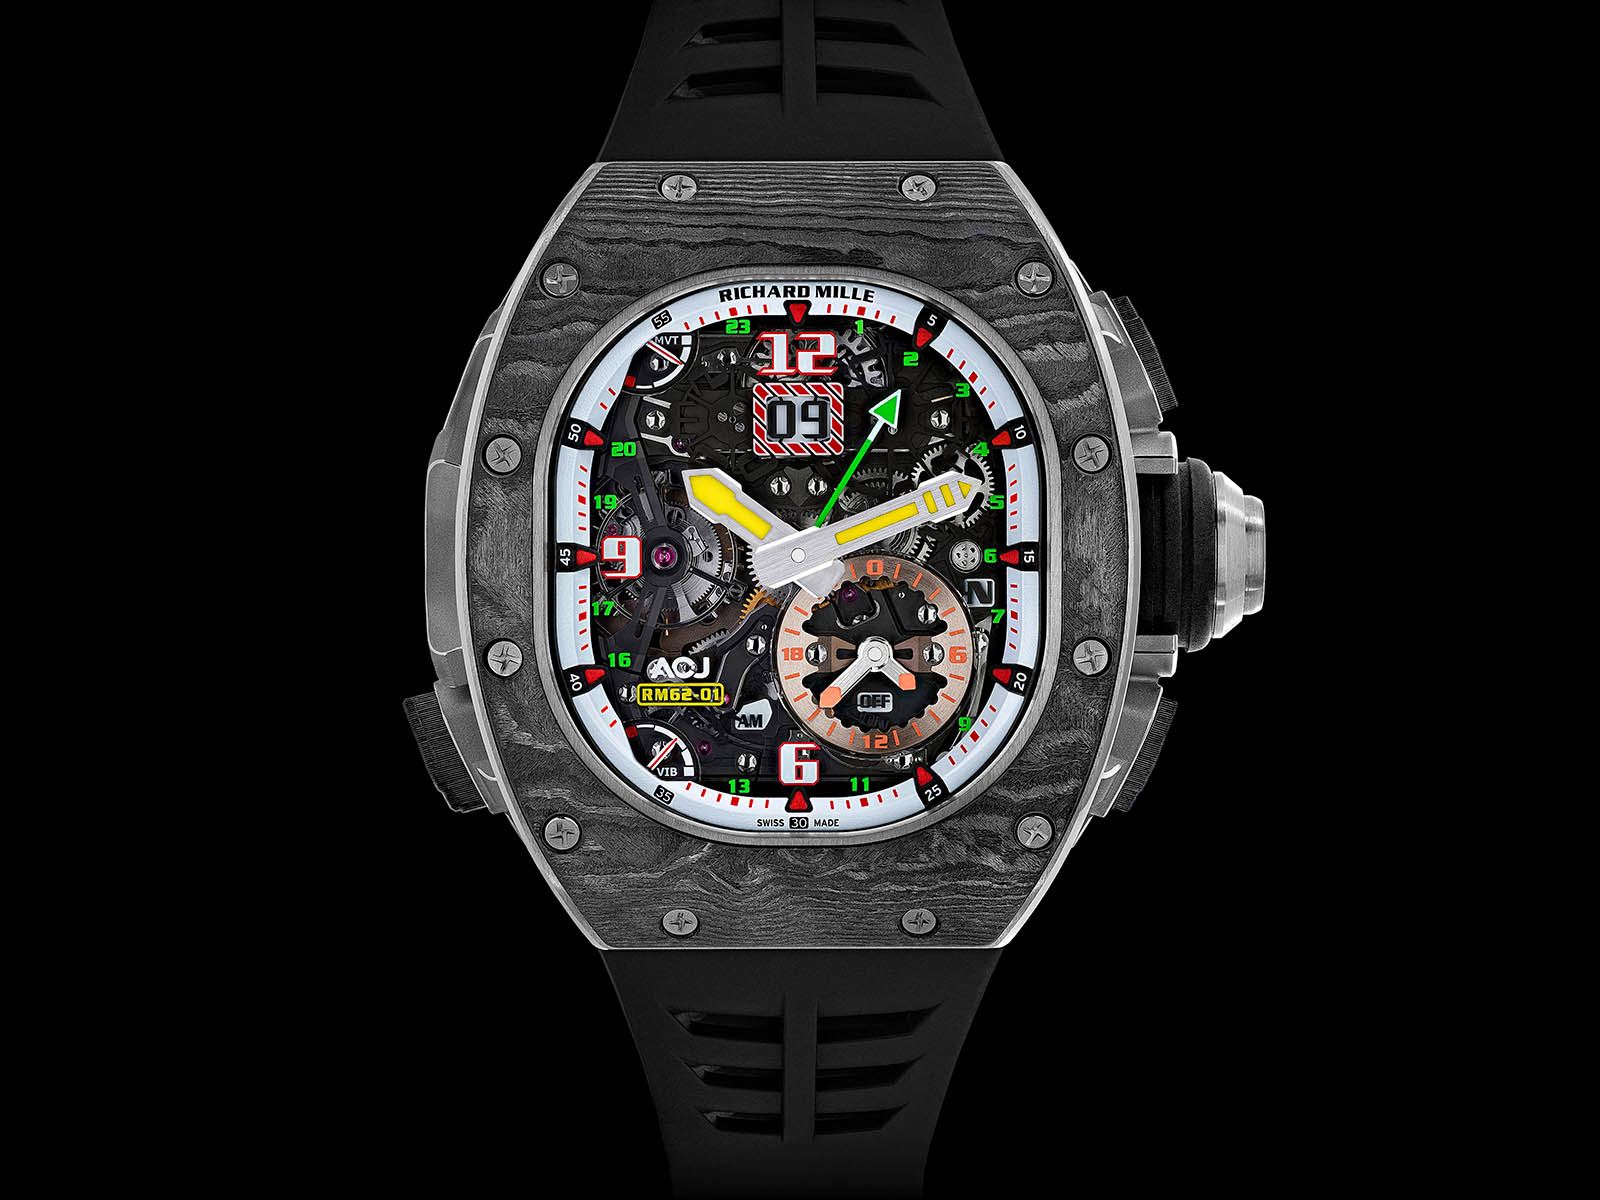 richard-mille-rm-62-01-tourbillon-vibrating-alarm-airbus-corporate-jets-2.jpg